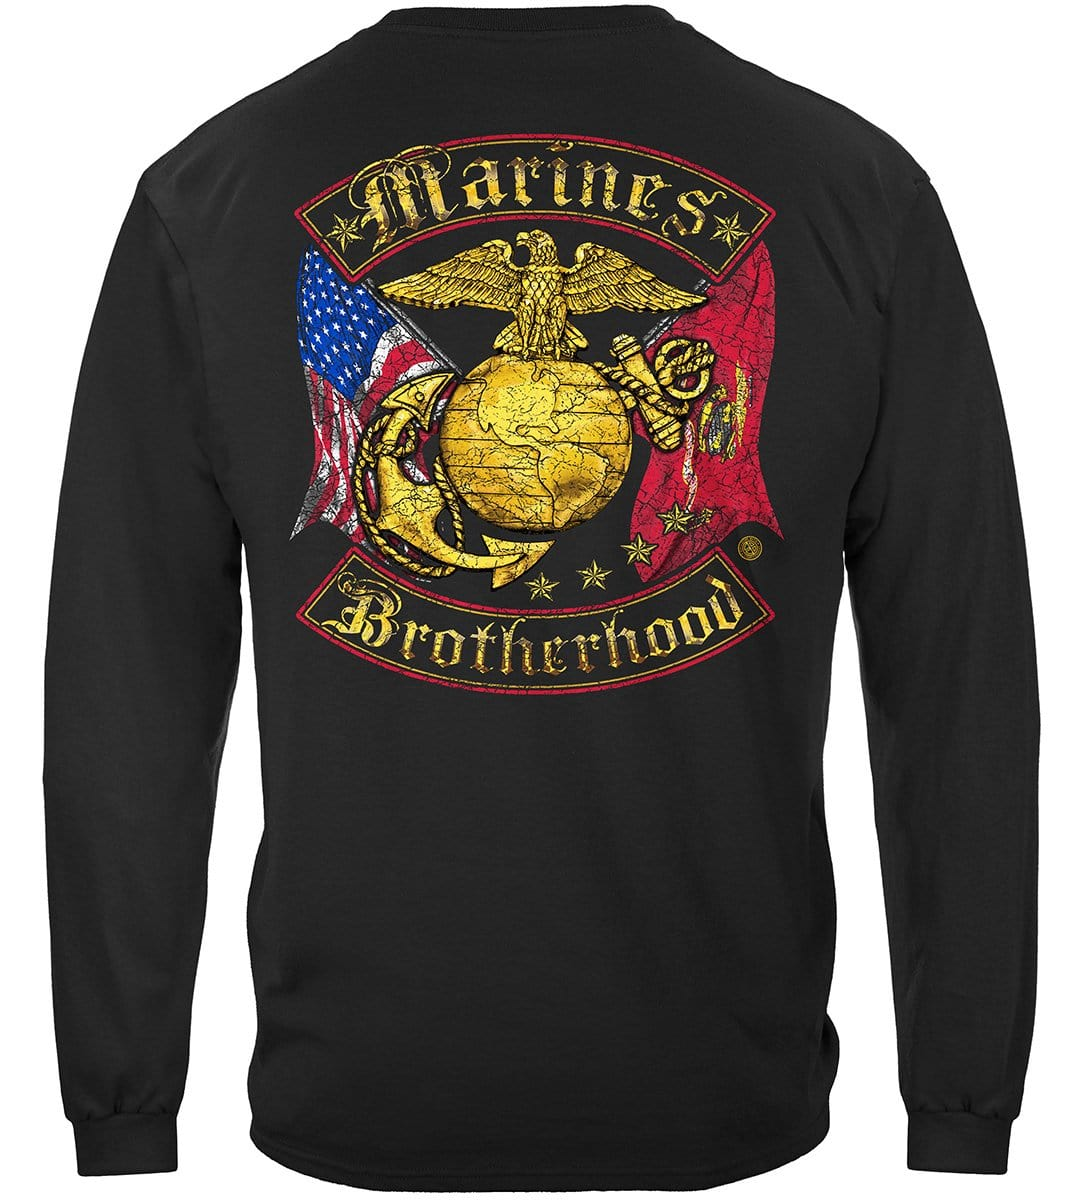 USMC Marines Double Flag Brotherhood Distressed Gold Foil Premium Long Sleeves